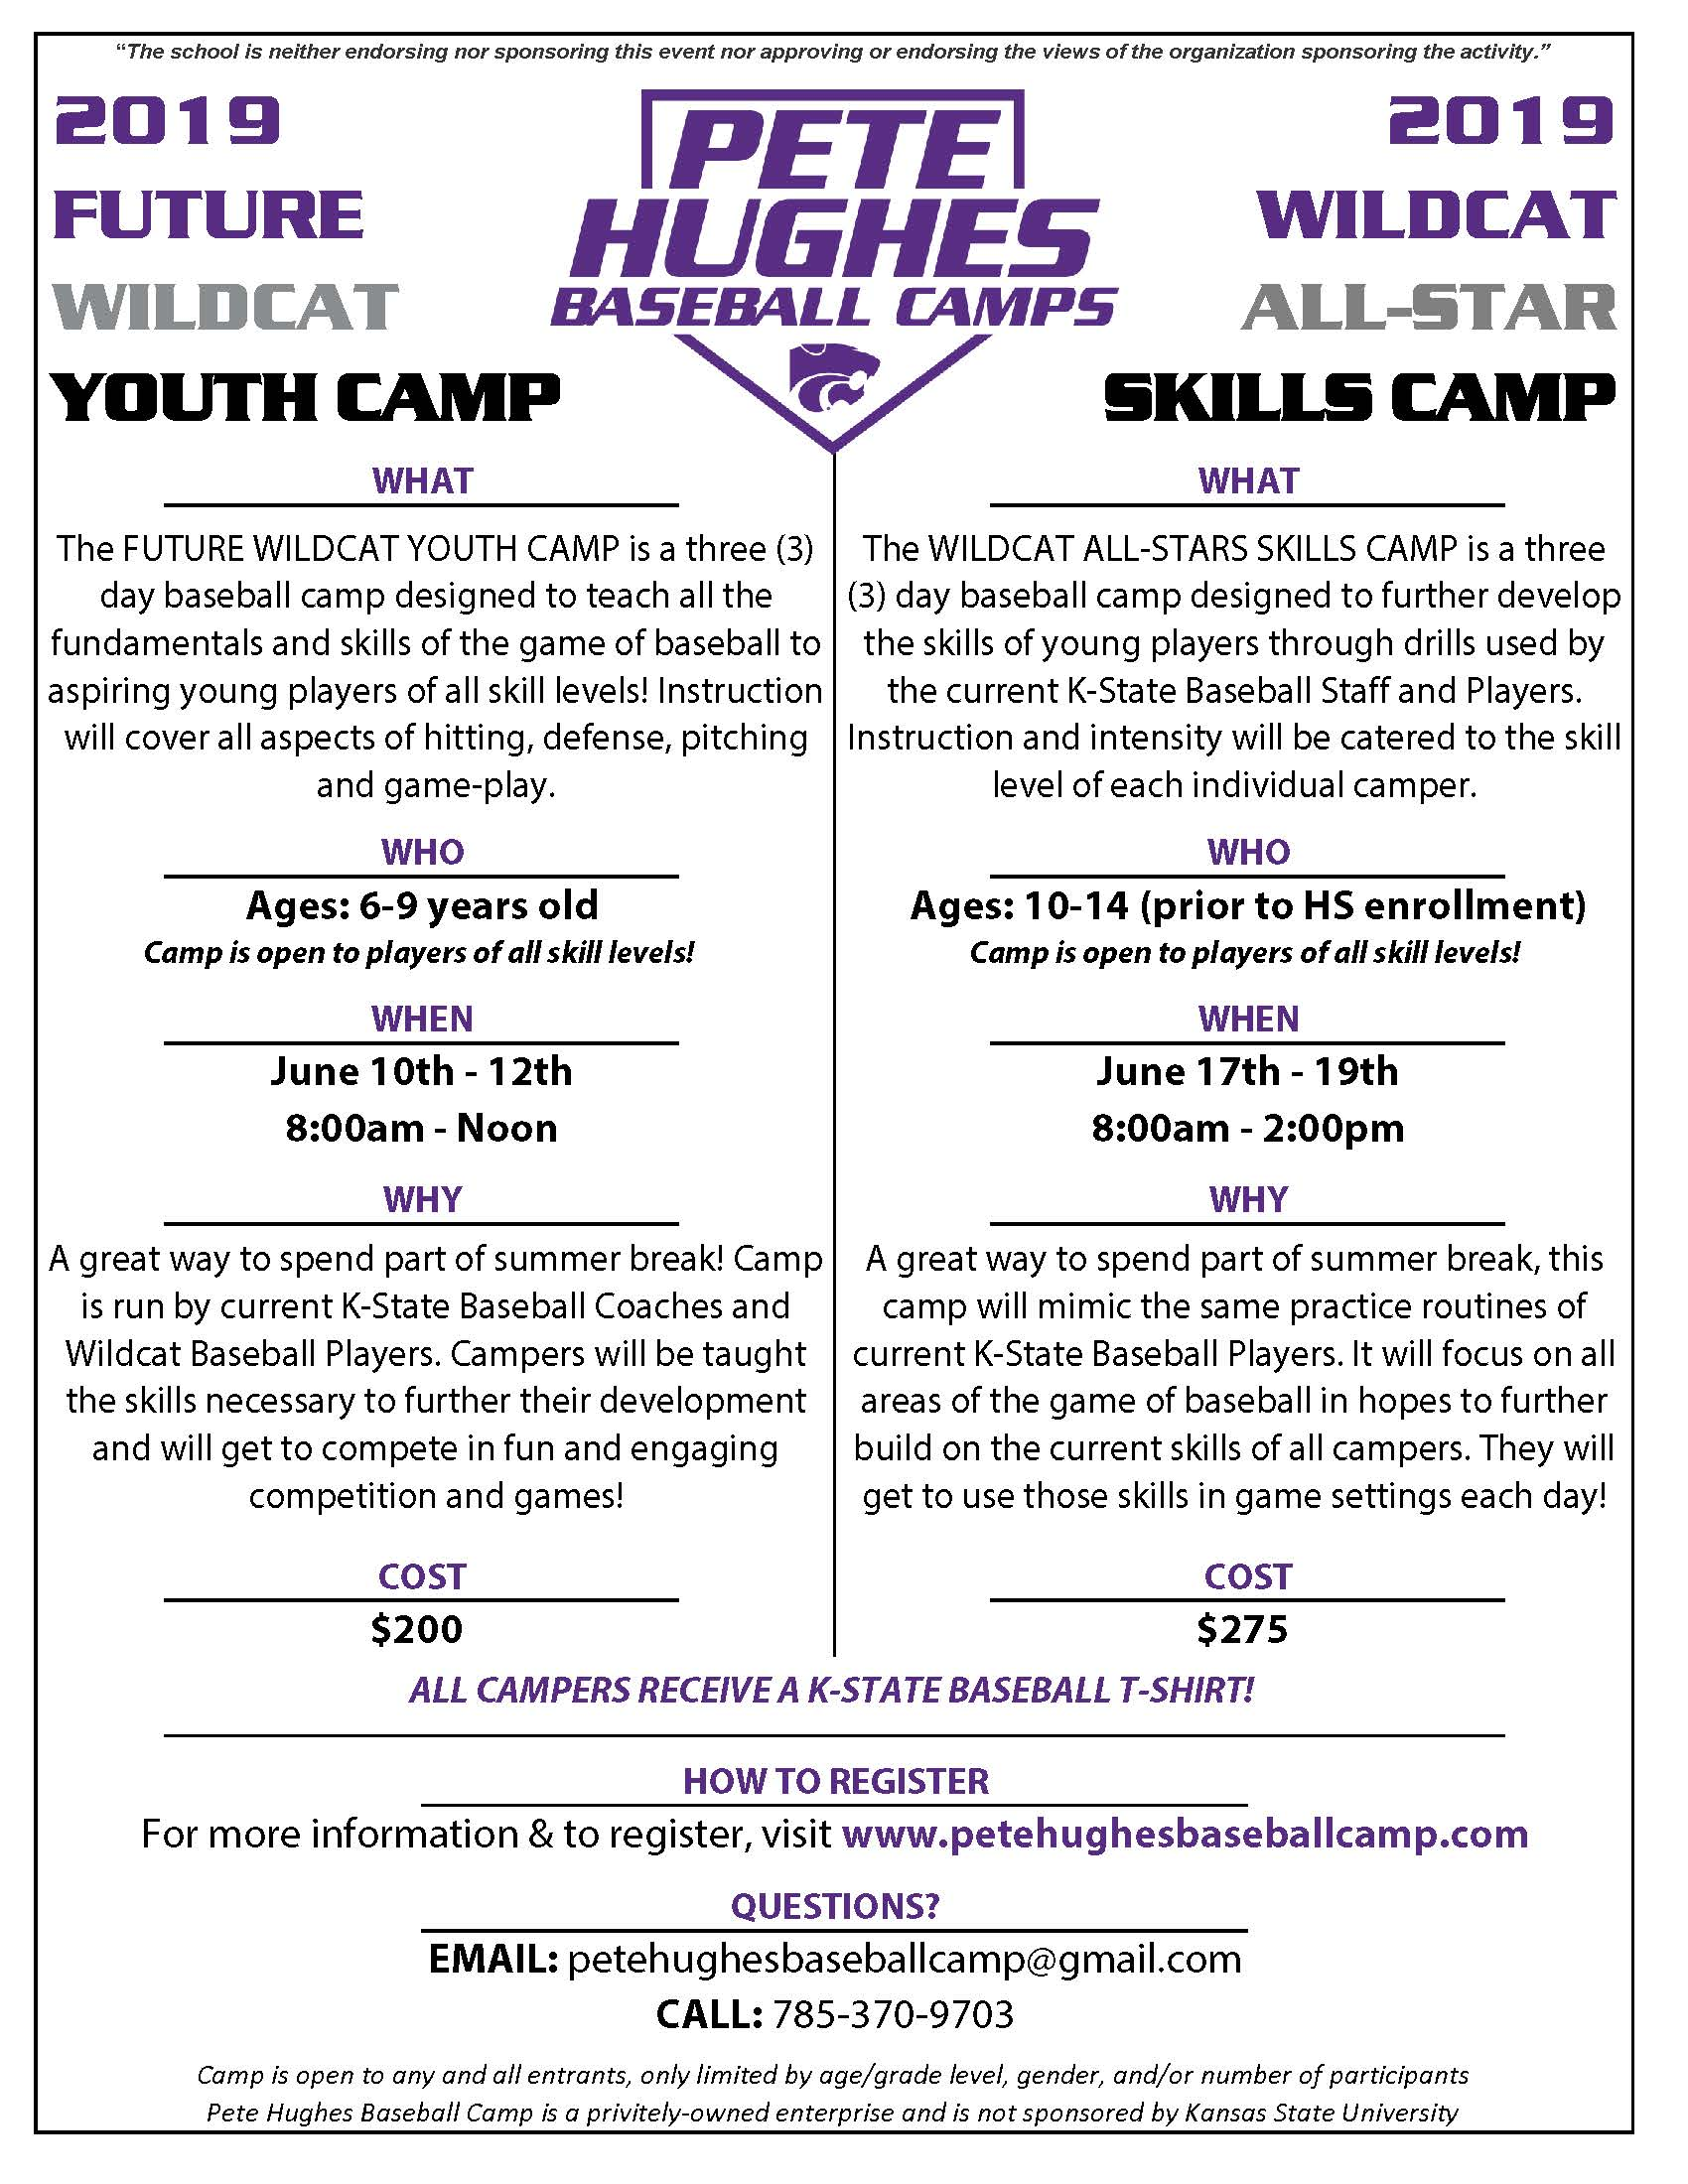 Flyer for youth baseball camp